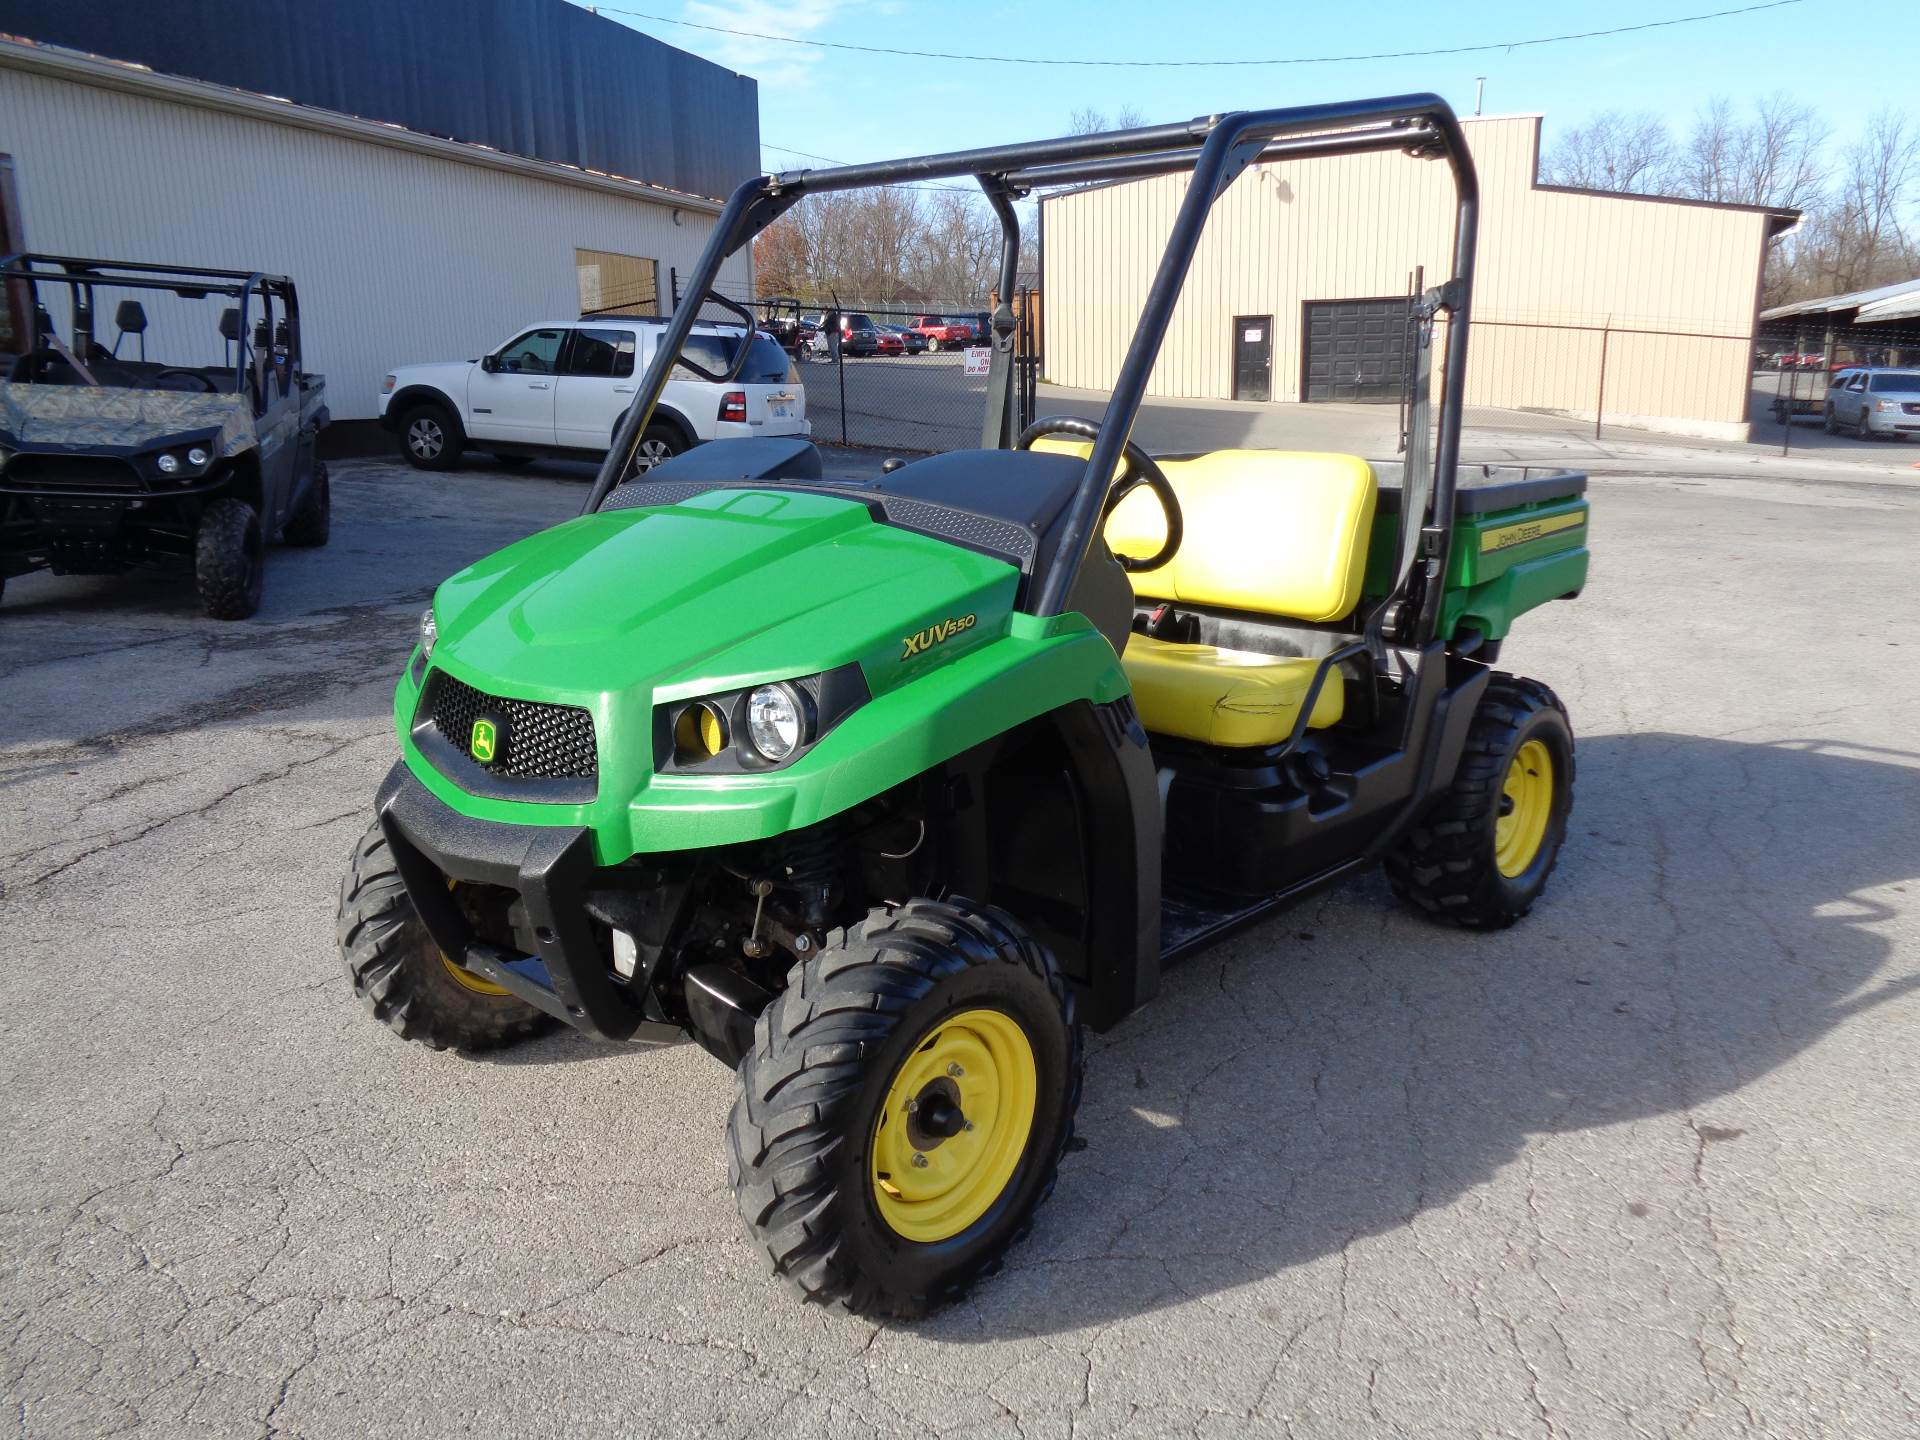 2013 john deere gator xuv 550 ebay. Black Bedroom Furniture Sets. Home Design Ideas